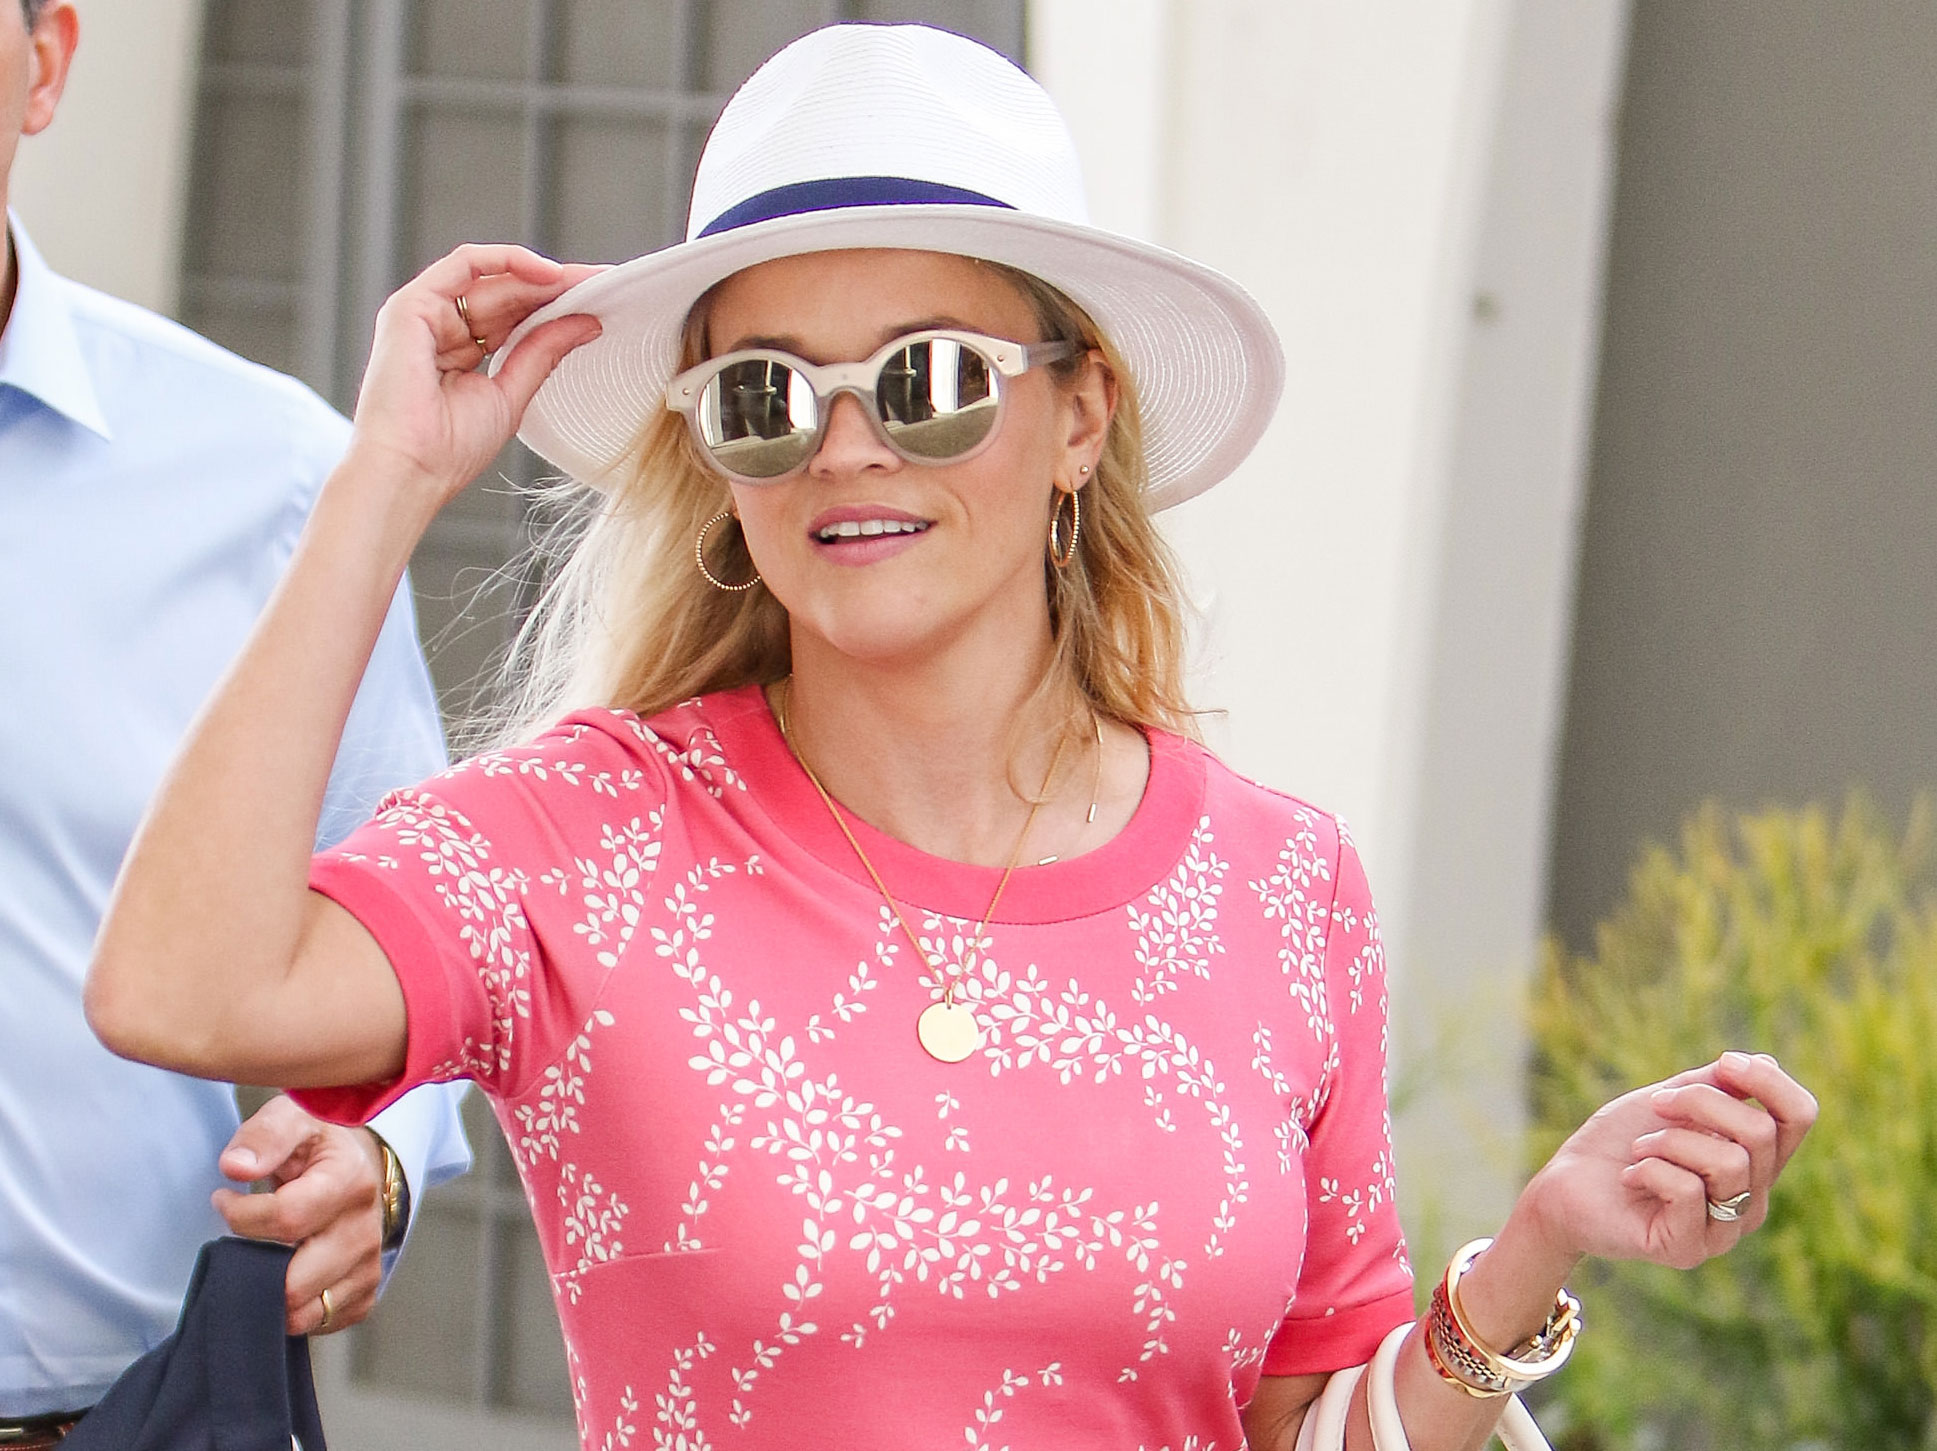 Reese Witherspoon's fashion line has all the pieces to make us excited about football season